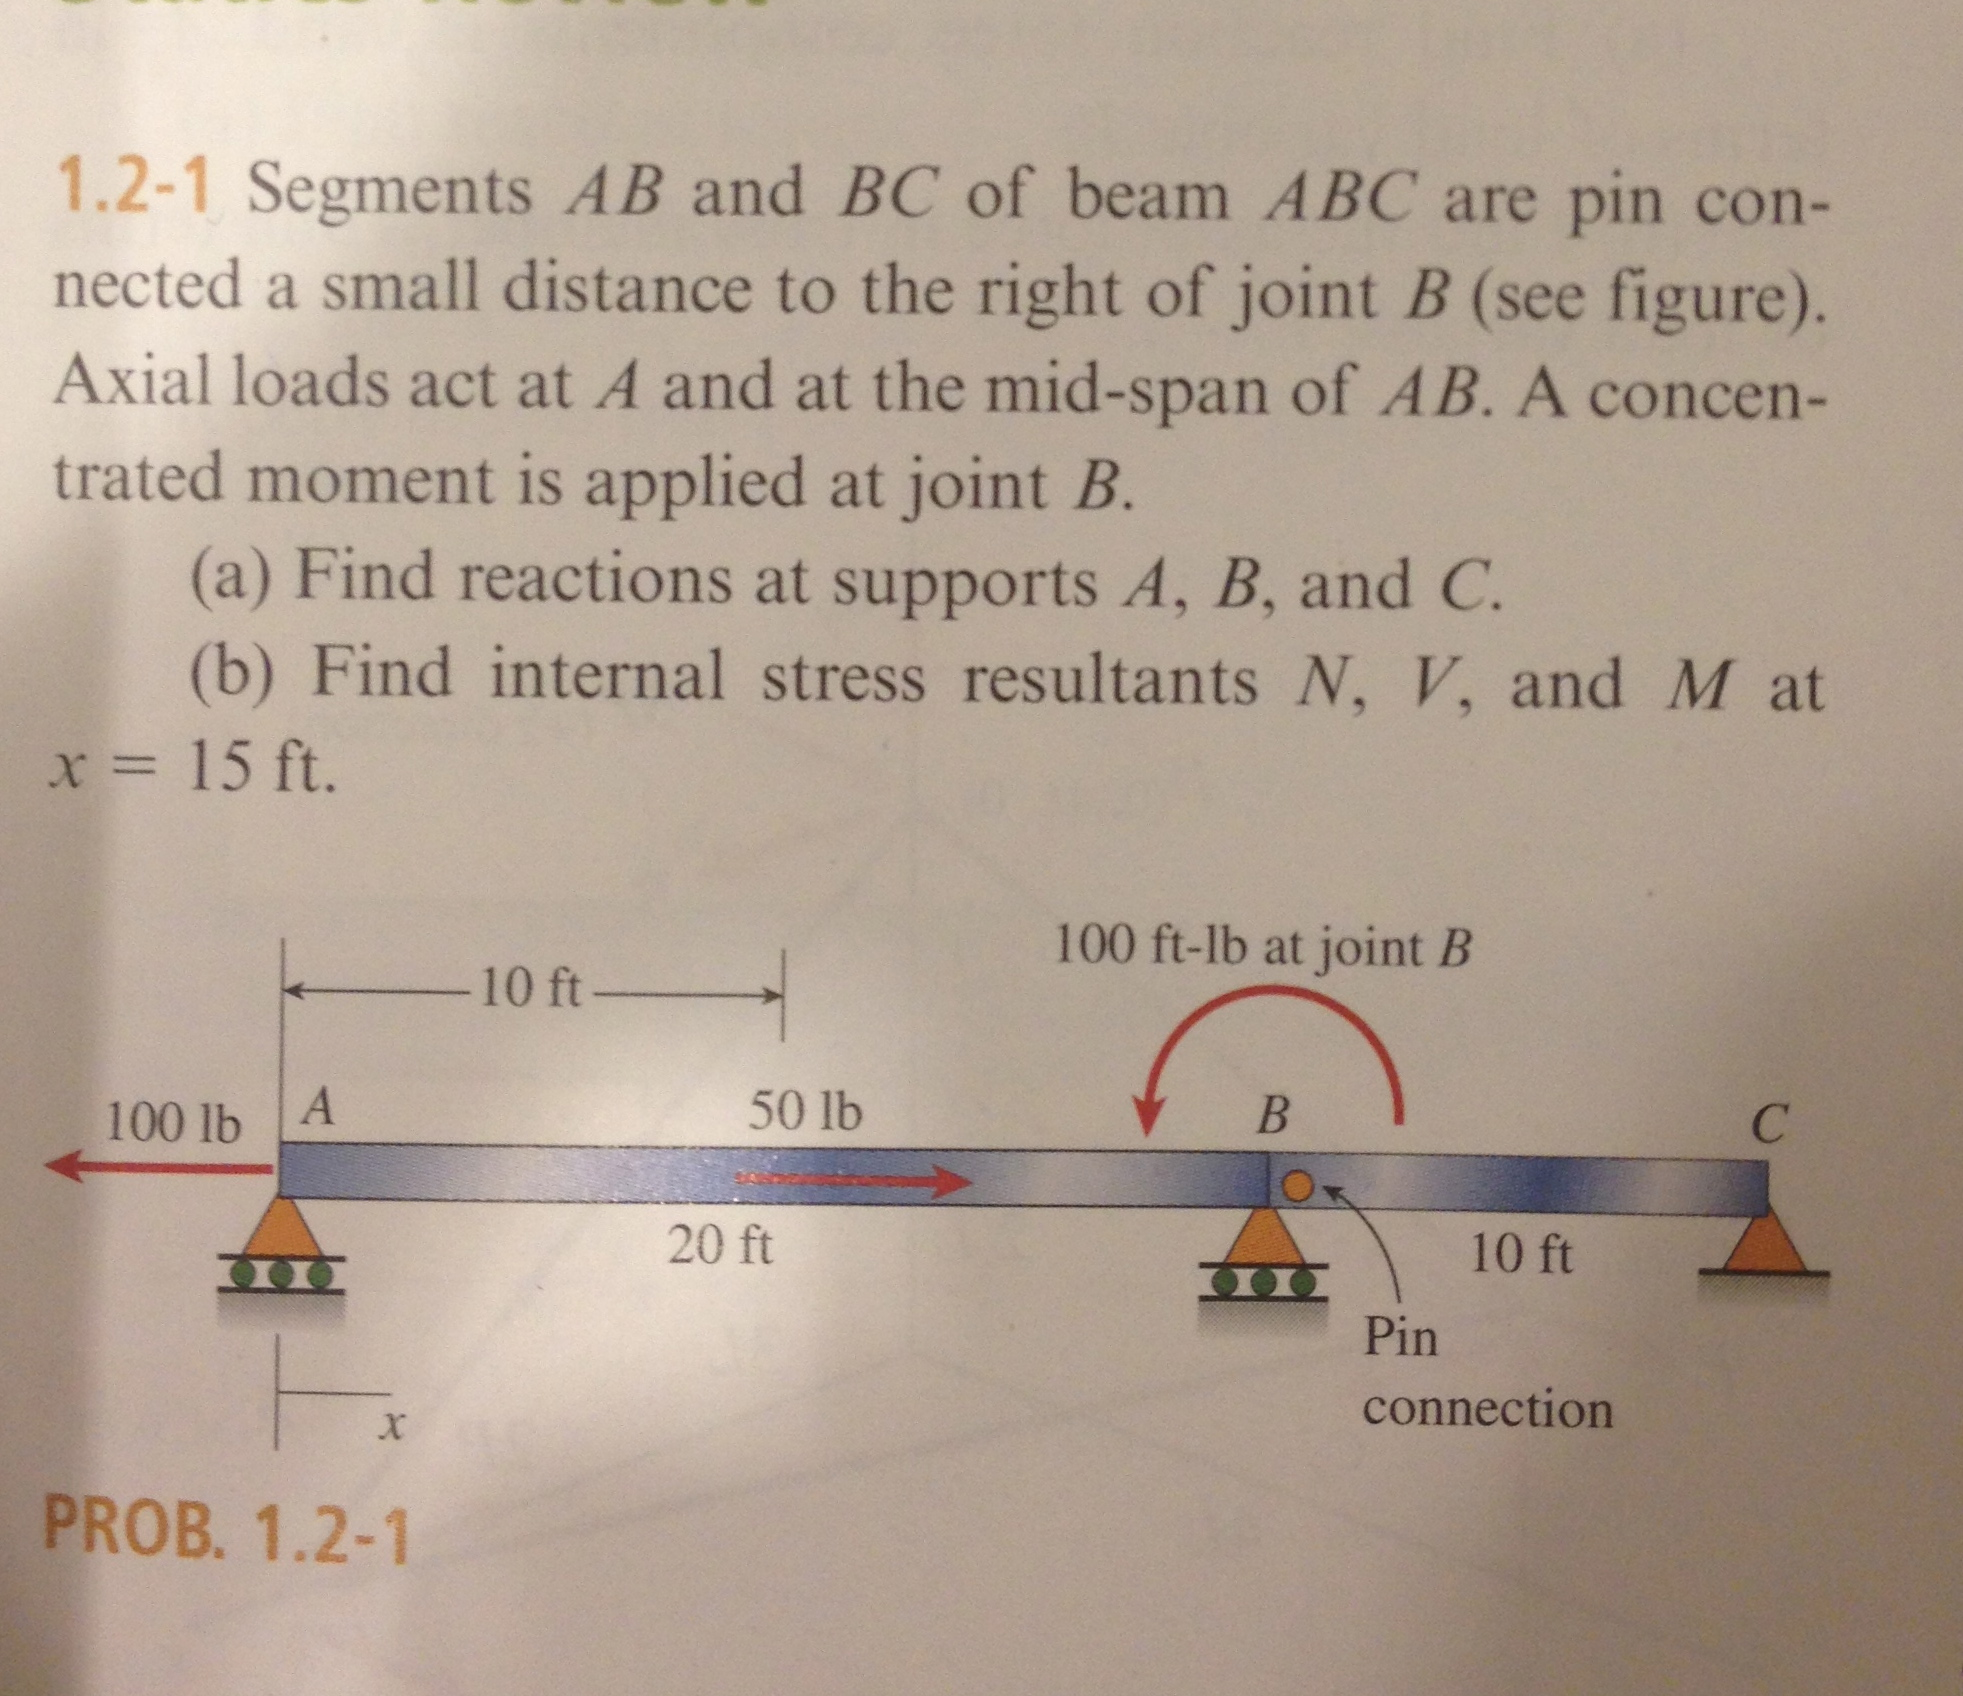 1.2-1 Segments AB and BC of beam ABC are pin conne